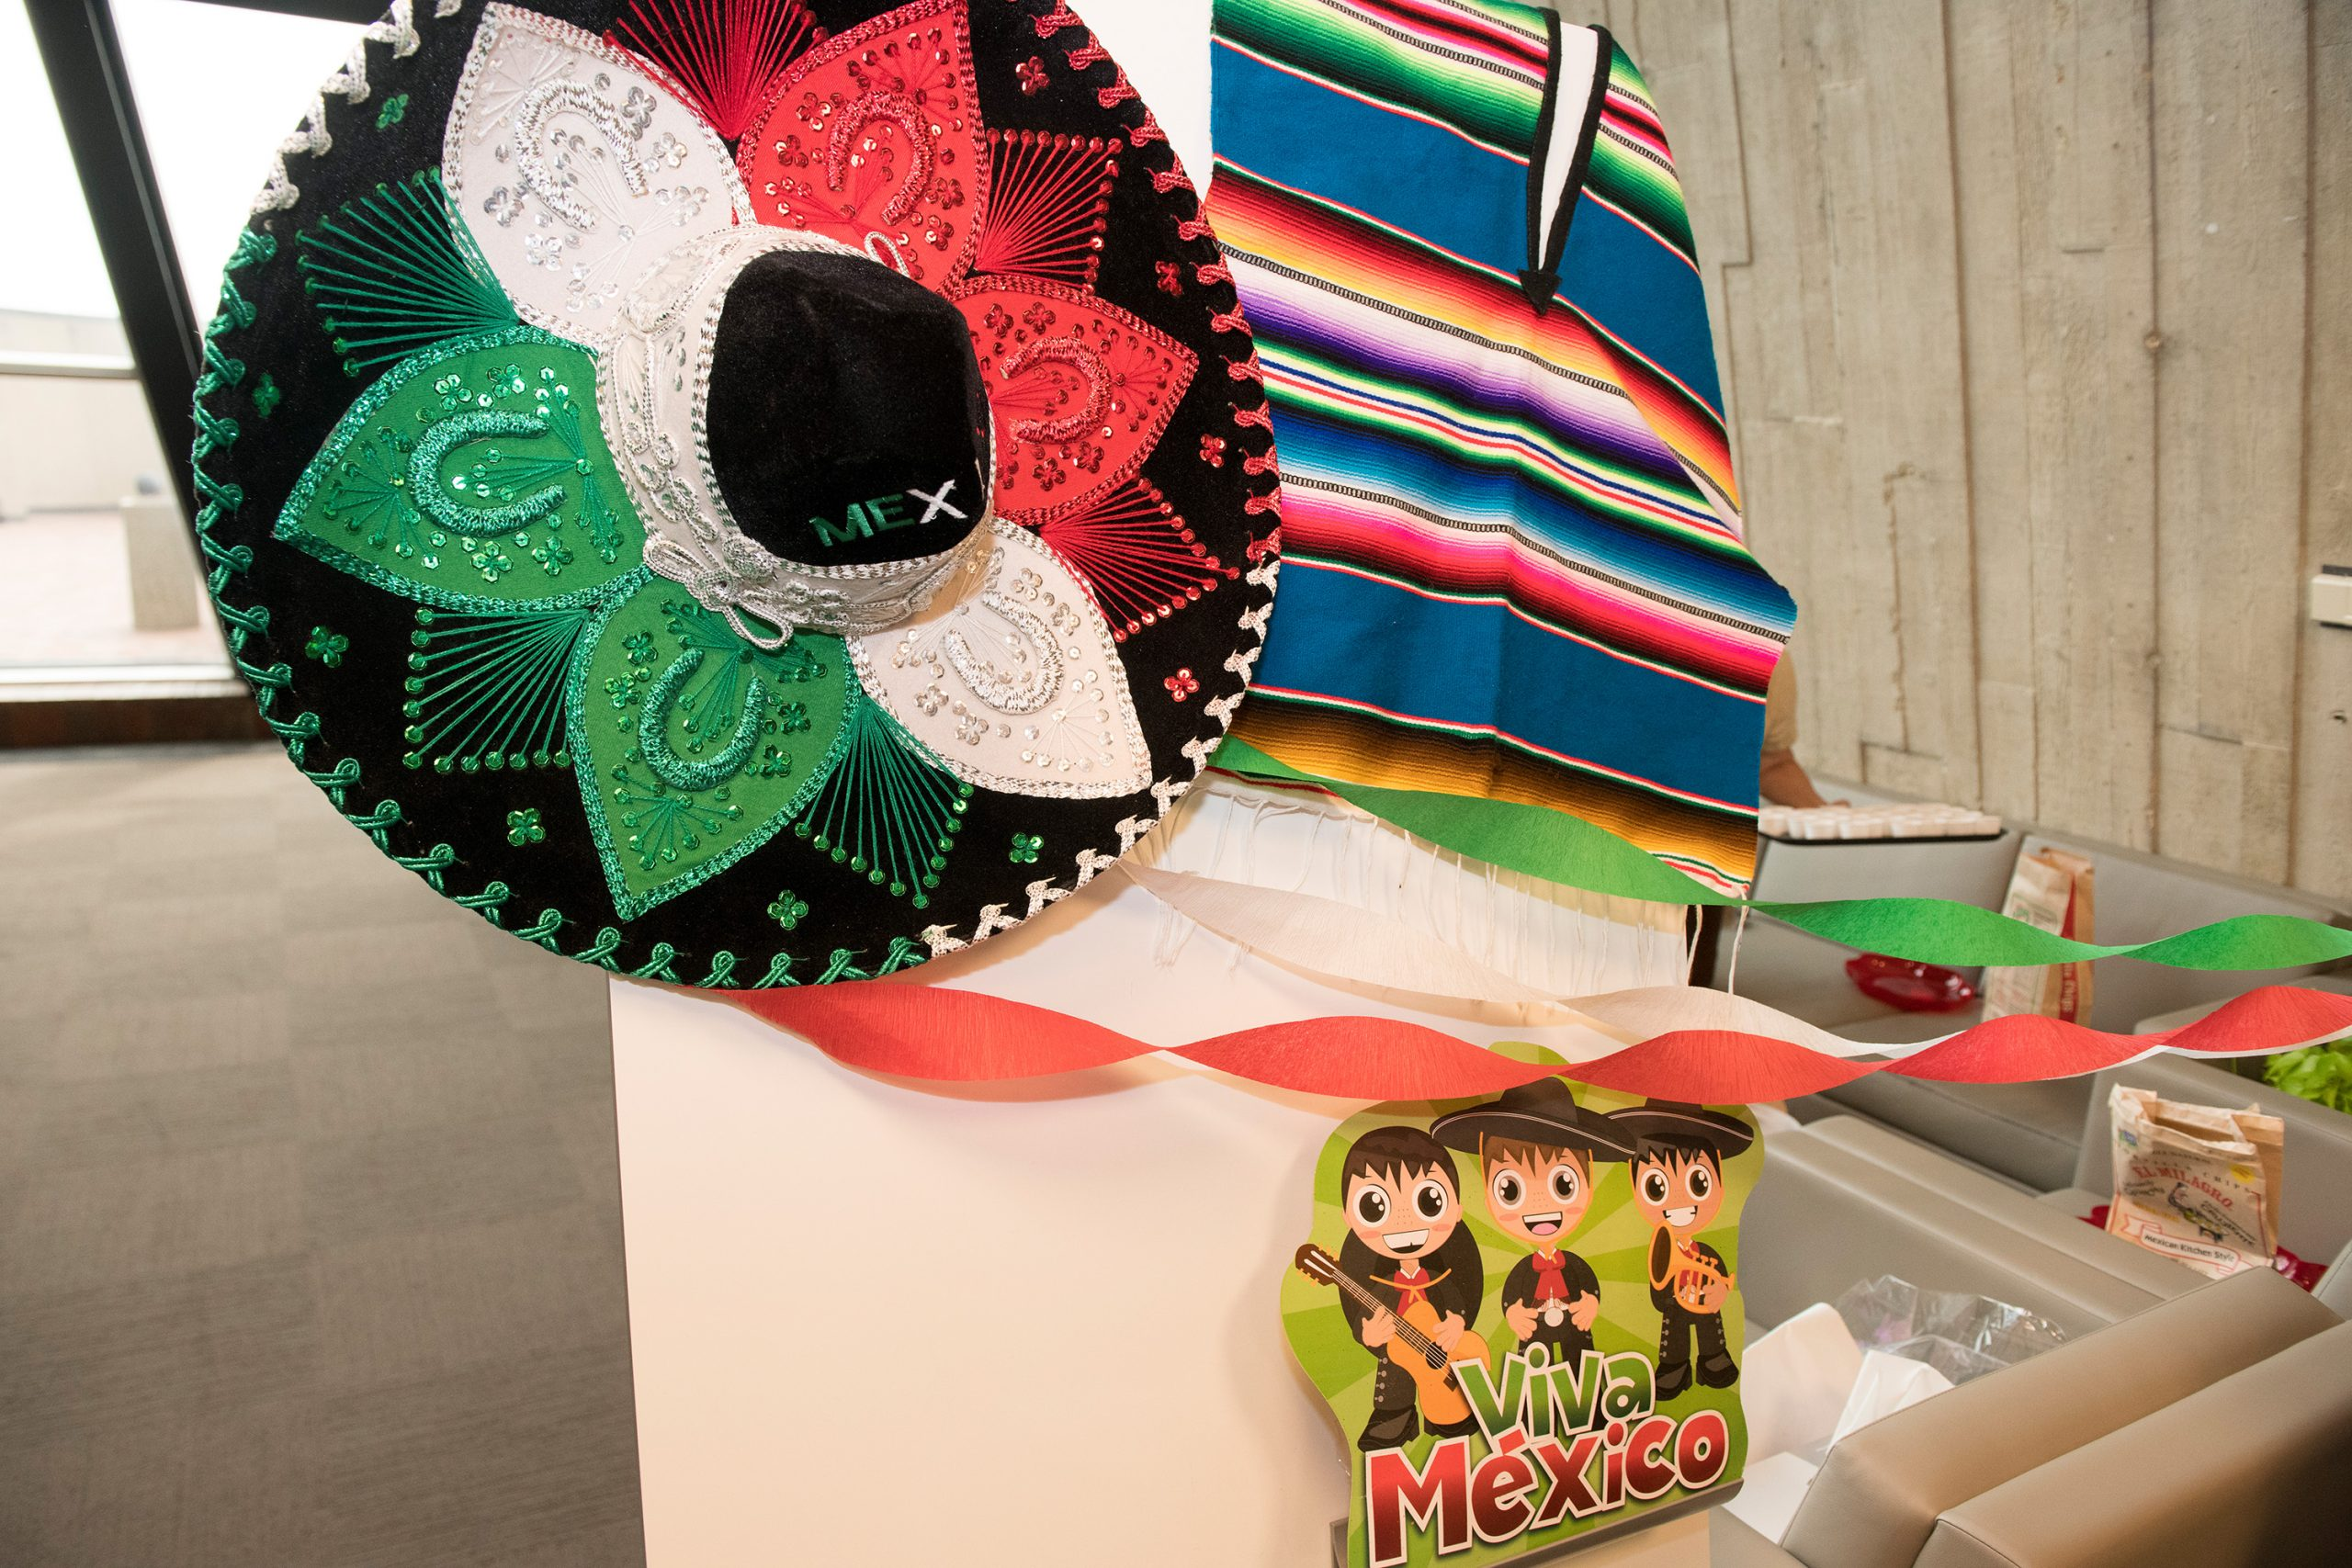 The Mexico table was fully decked out. Photo: Reidar Hahn